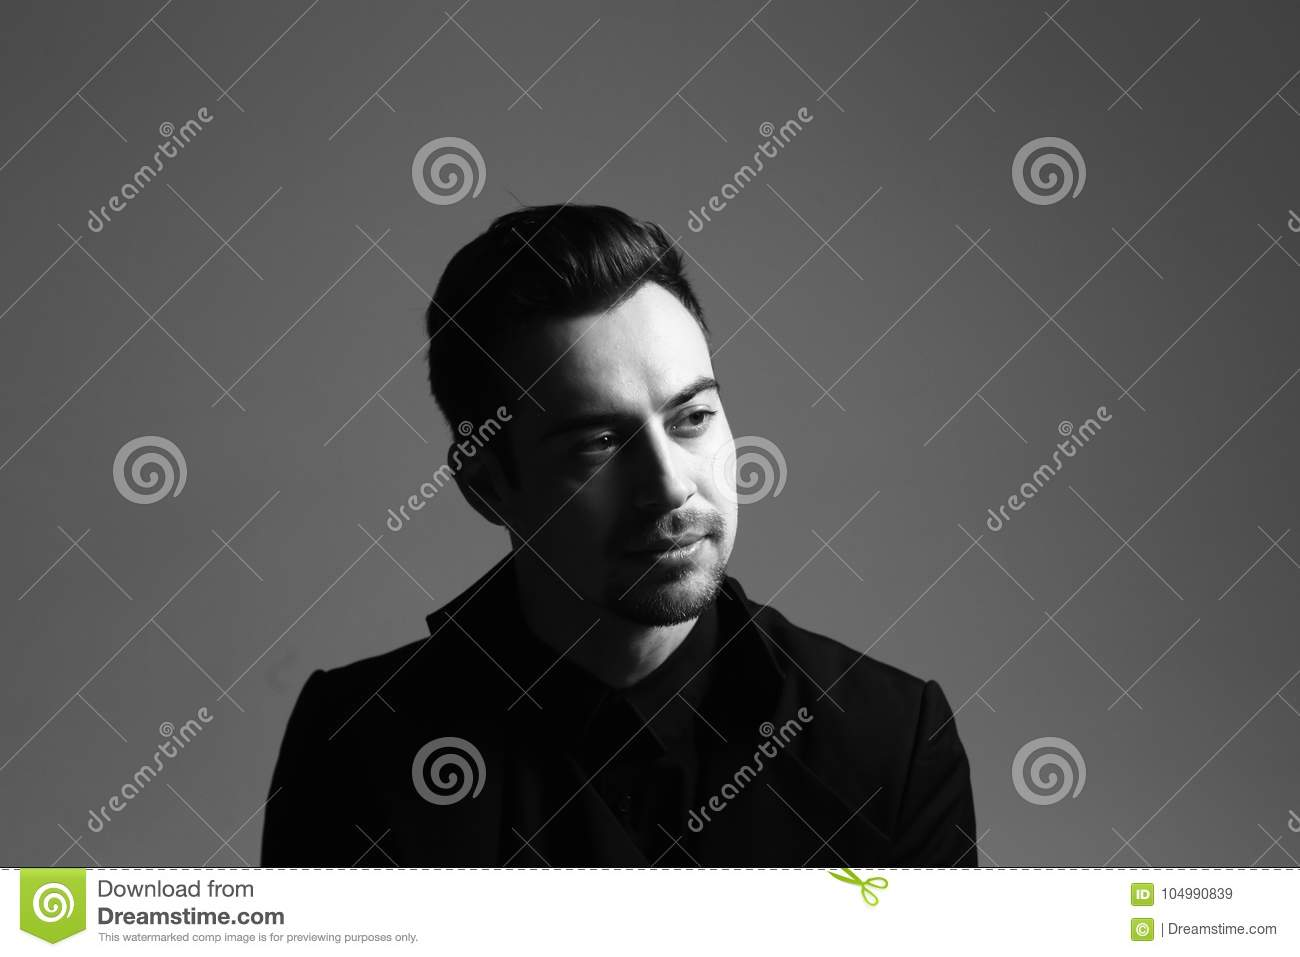 Black and white portrait of a serious young handsome man in a suit dramatic lighting